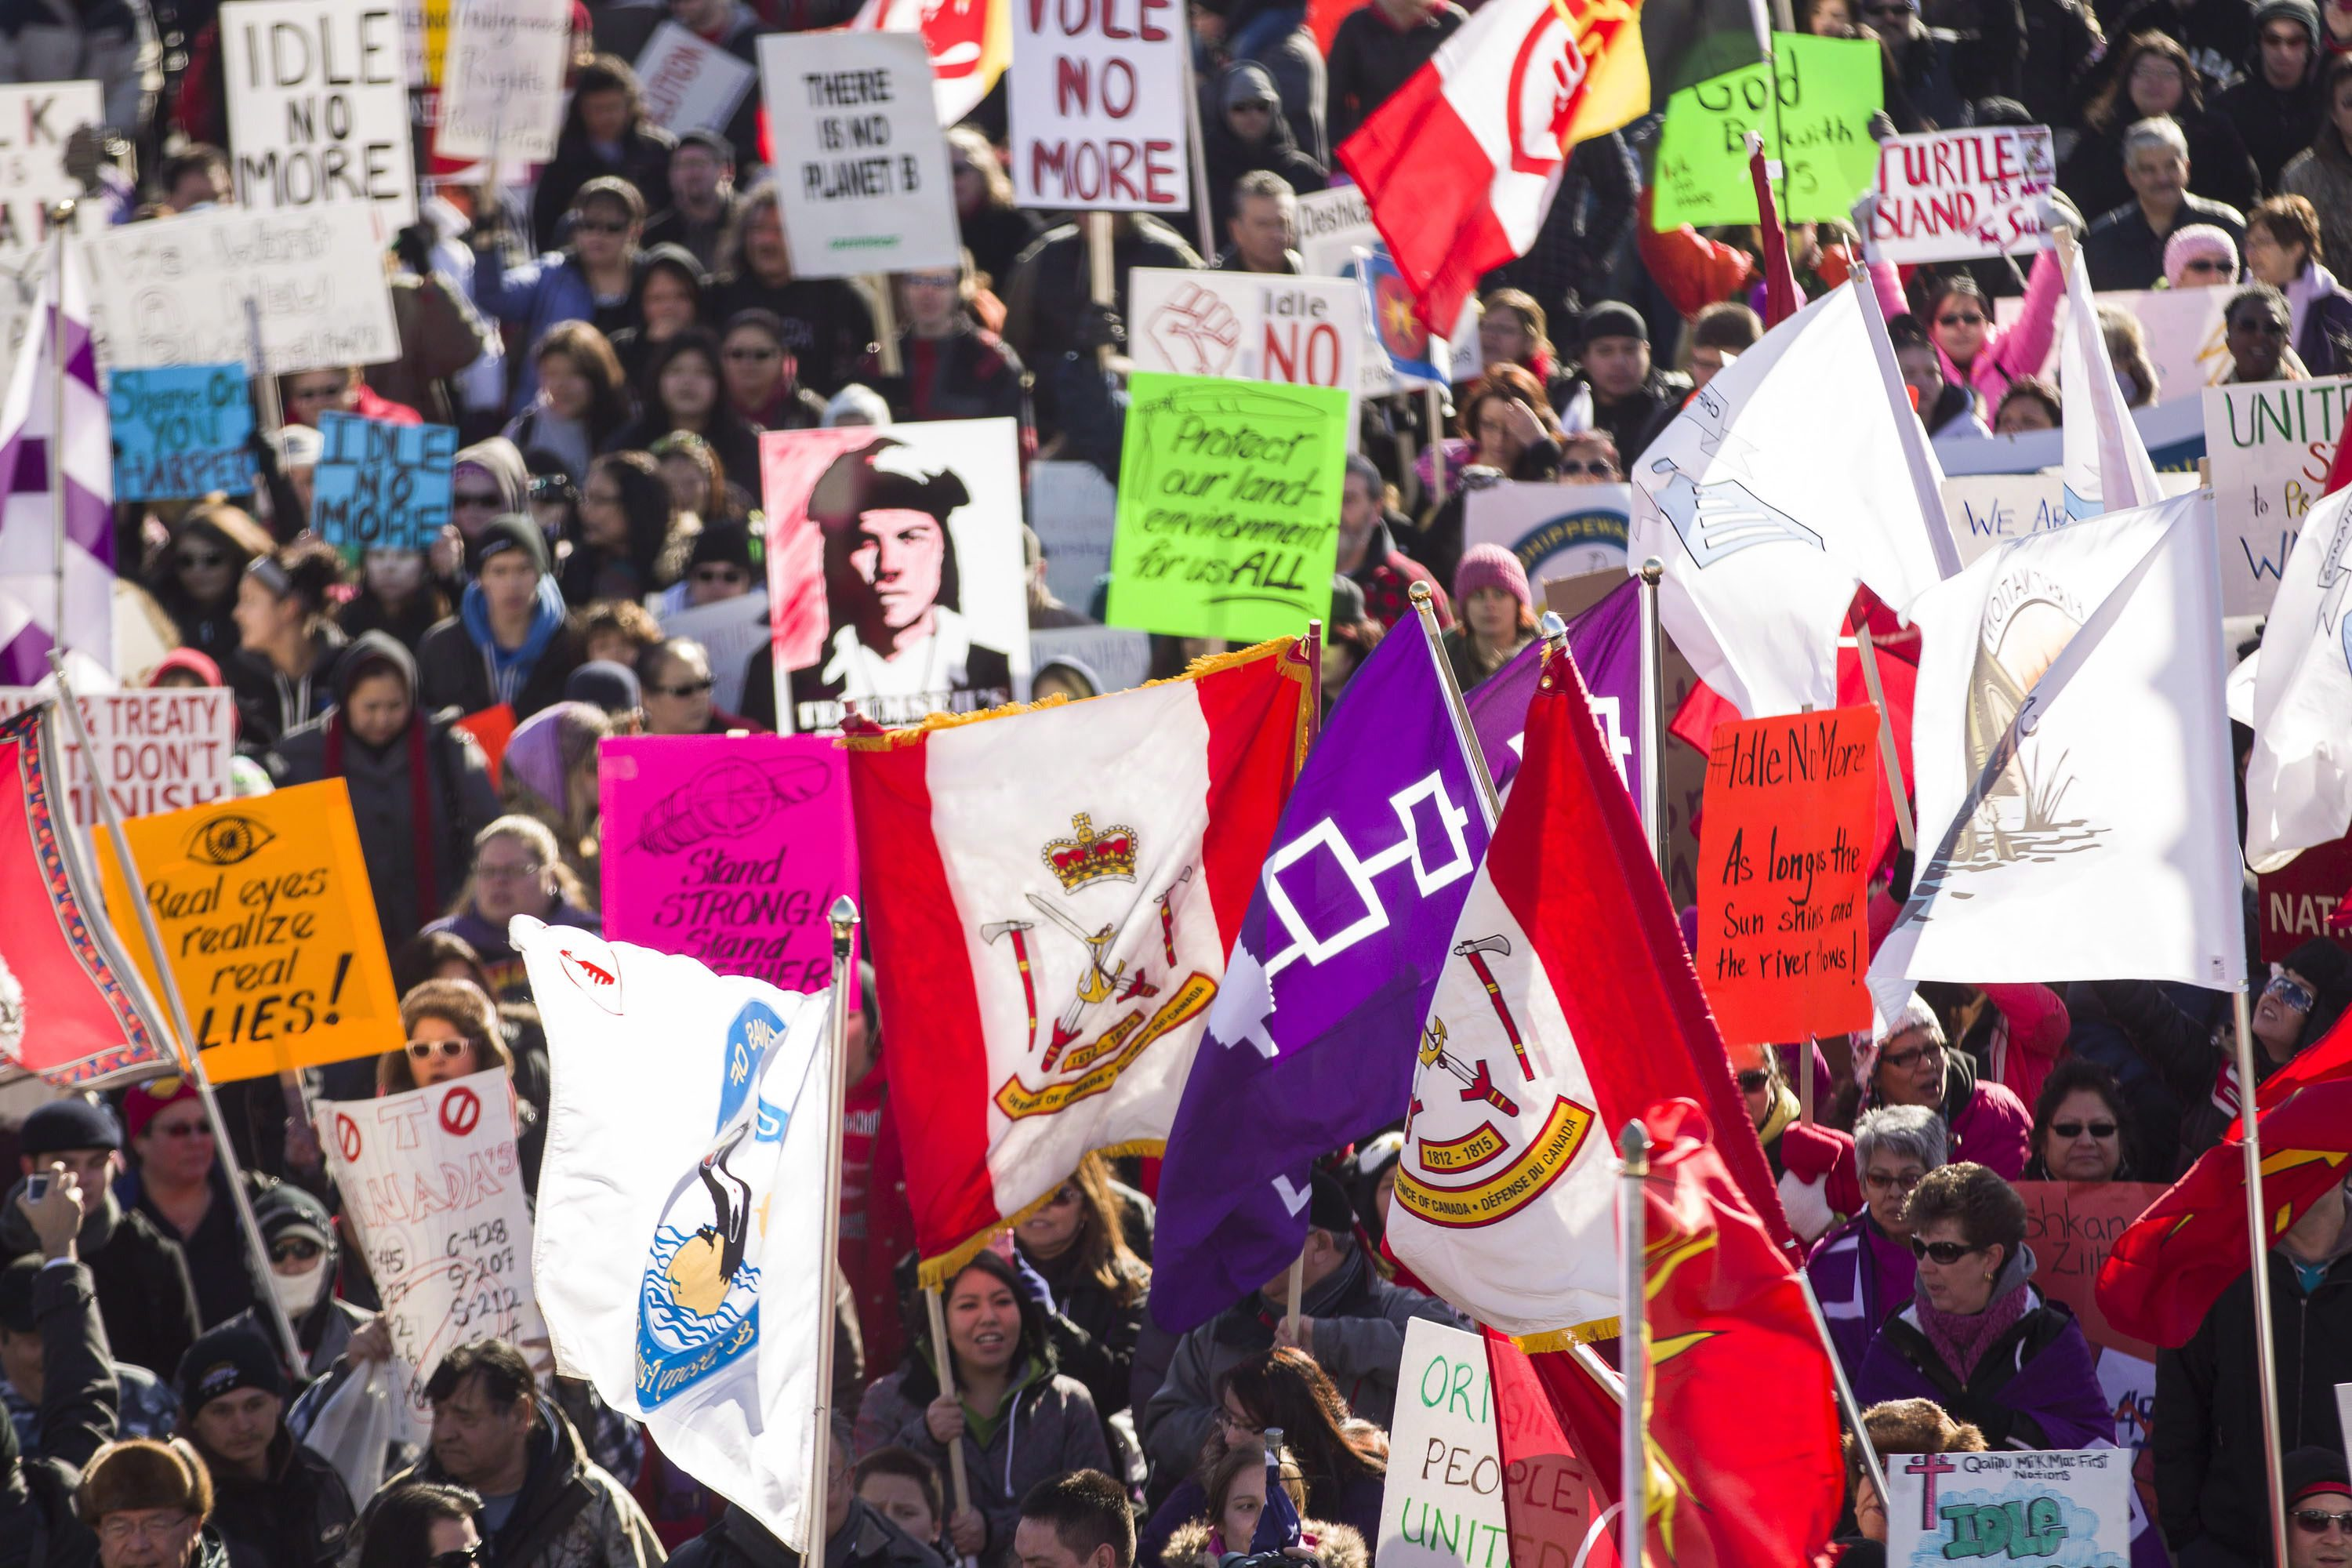 Approximately 1000 Idle No More protesters in Windsor Ontario on January 16, 2013.